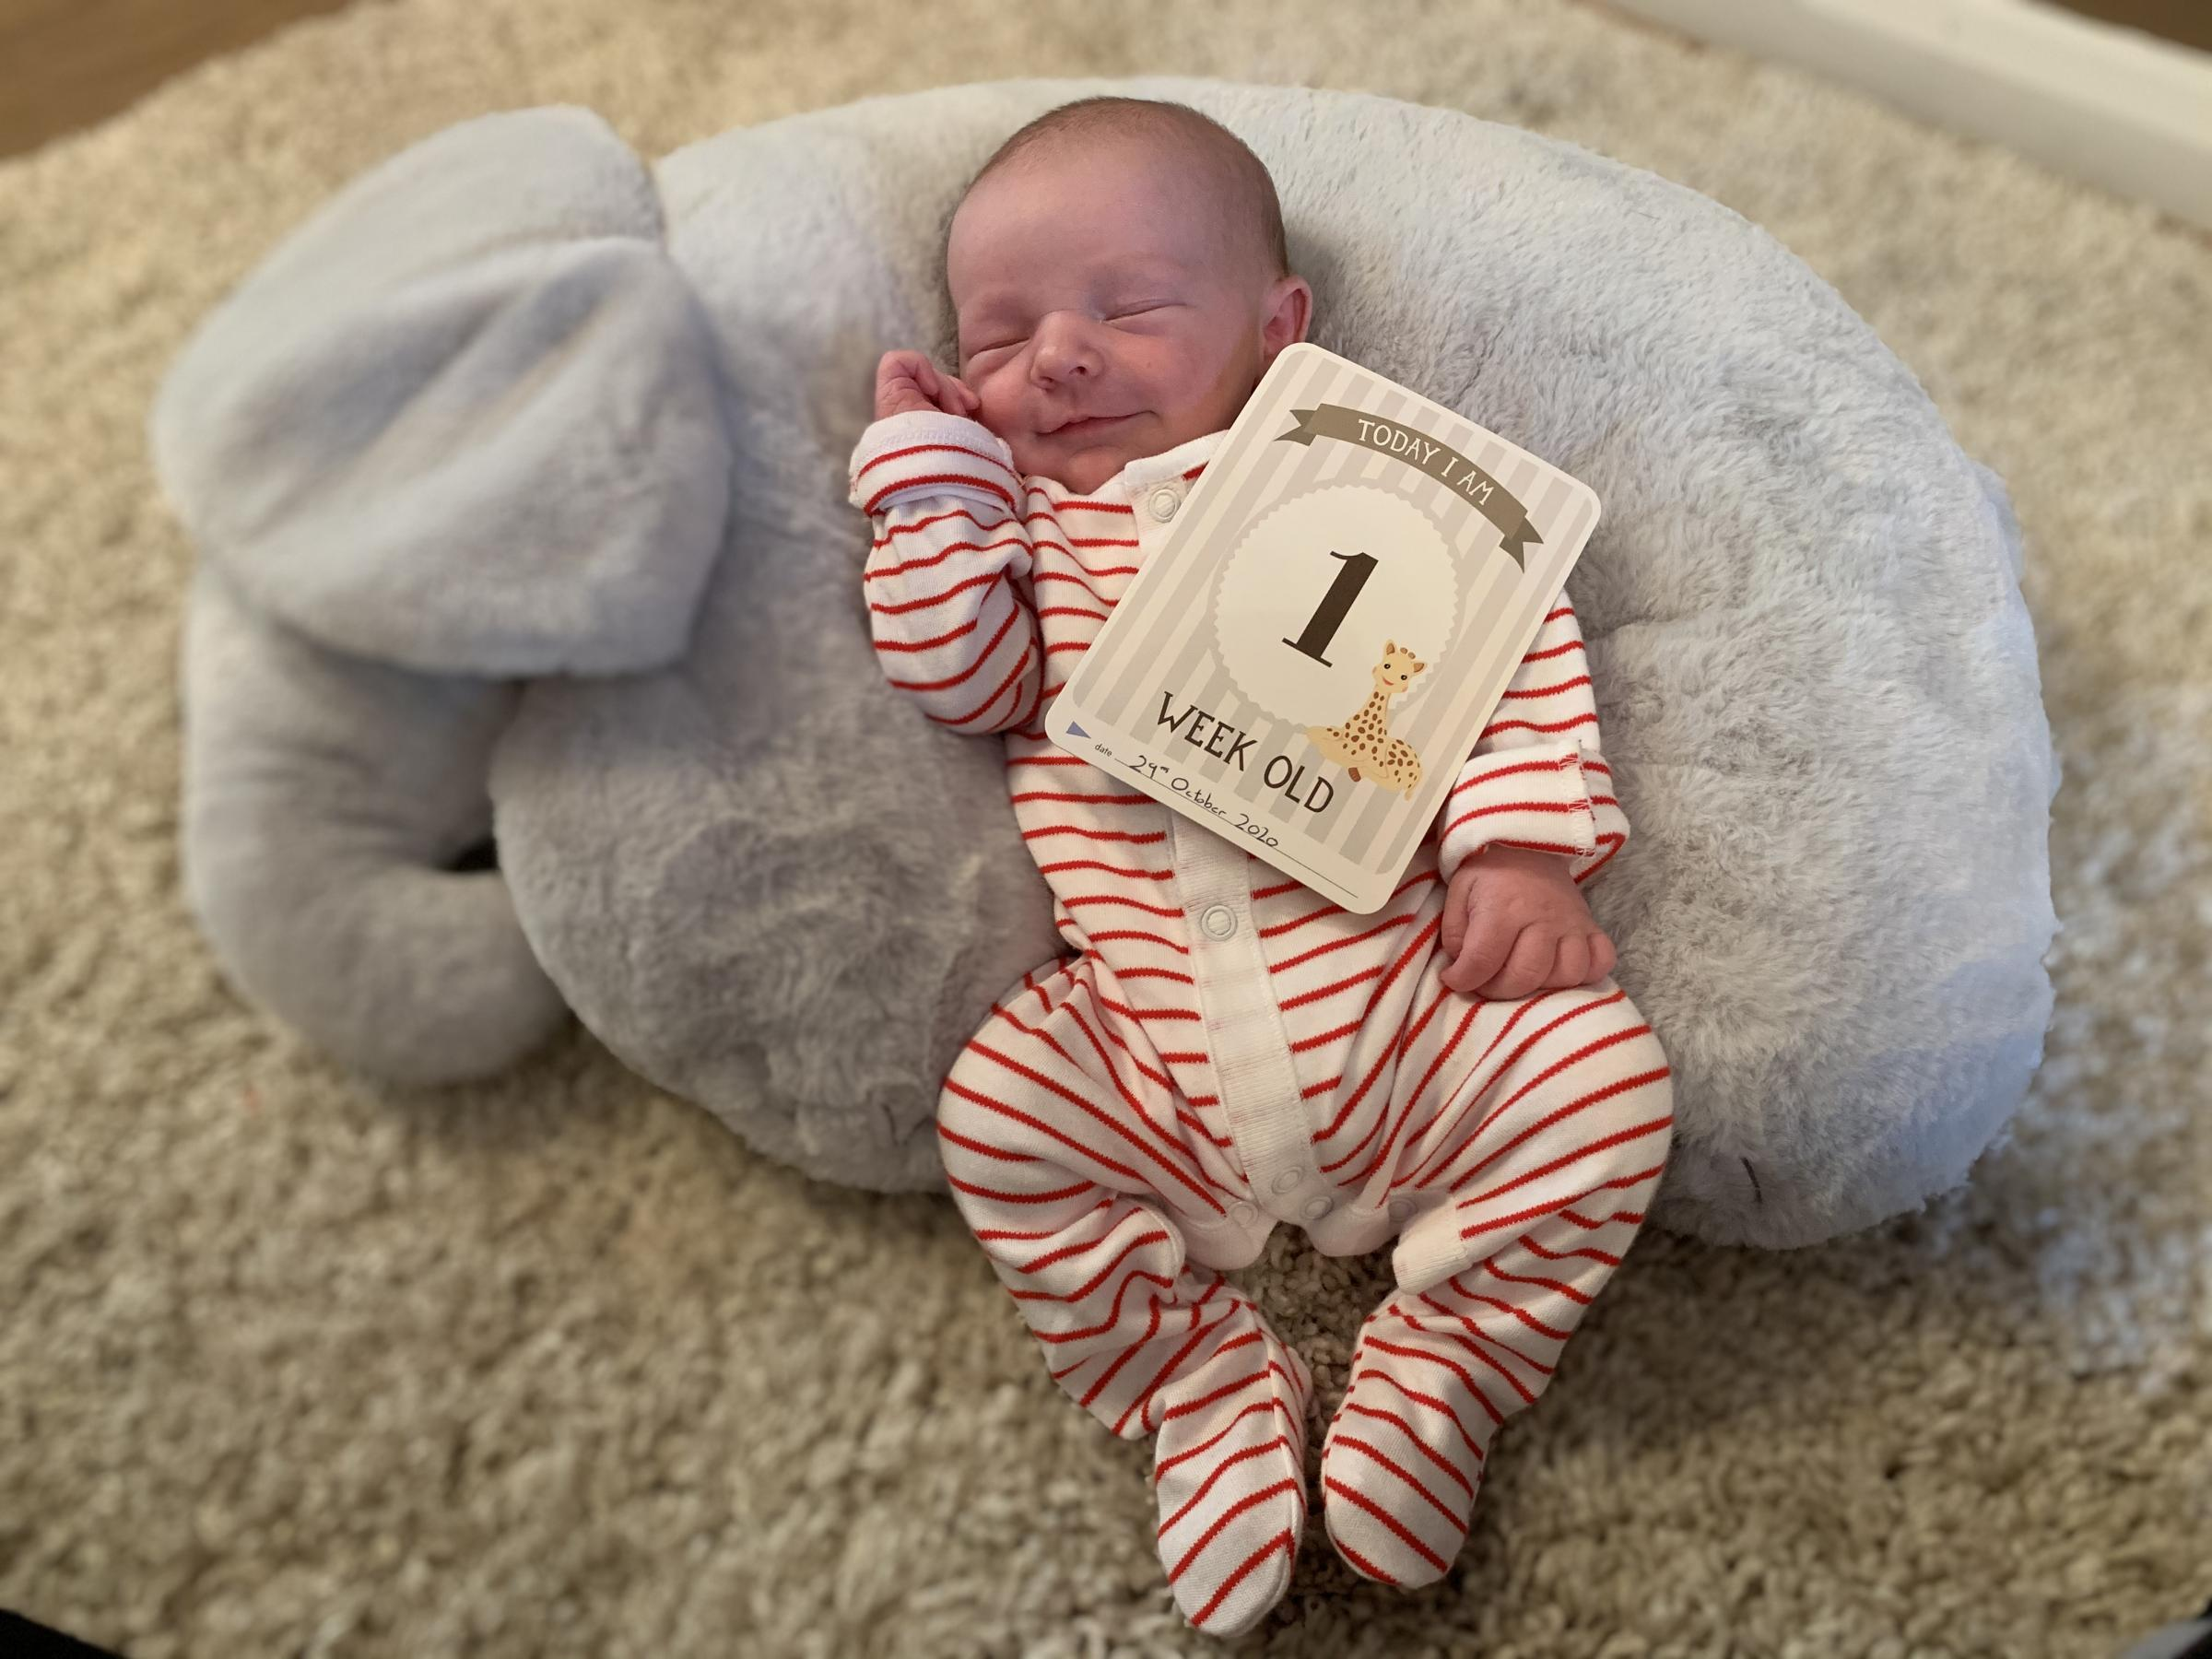 York Press: Freddie Elliott Calpin was born on October 22 weighing 7lb 1.5oz  at York Hospital to Chloe Elliott and Joe Calpin of Rawcliffe, York. Freddie at one week old.